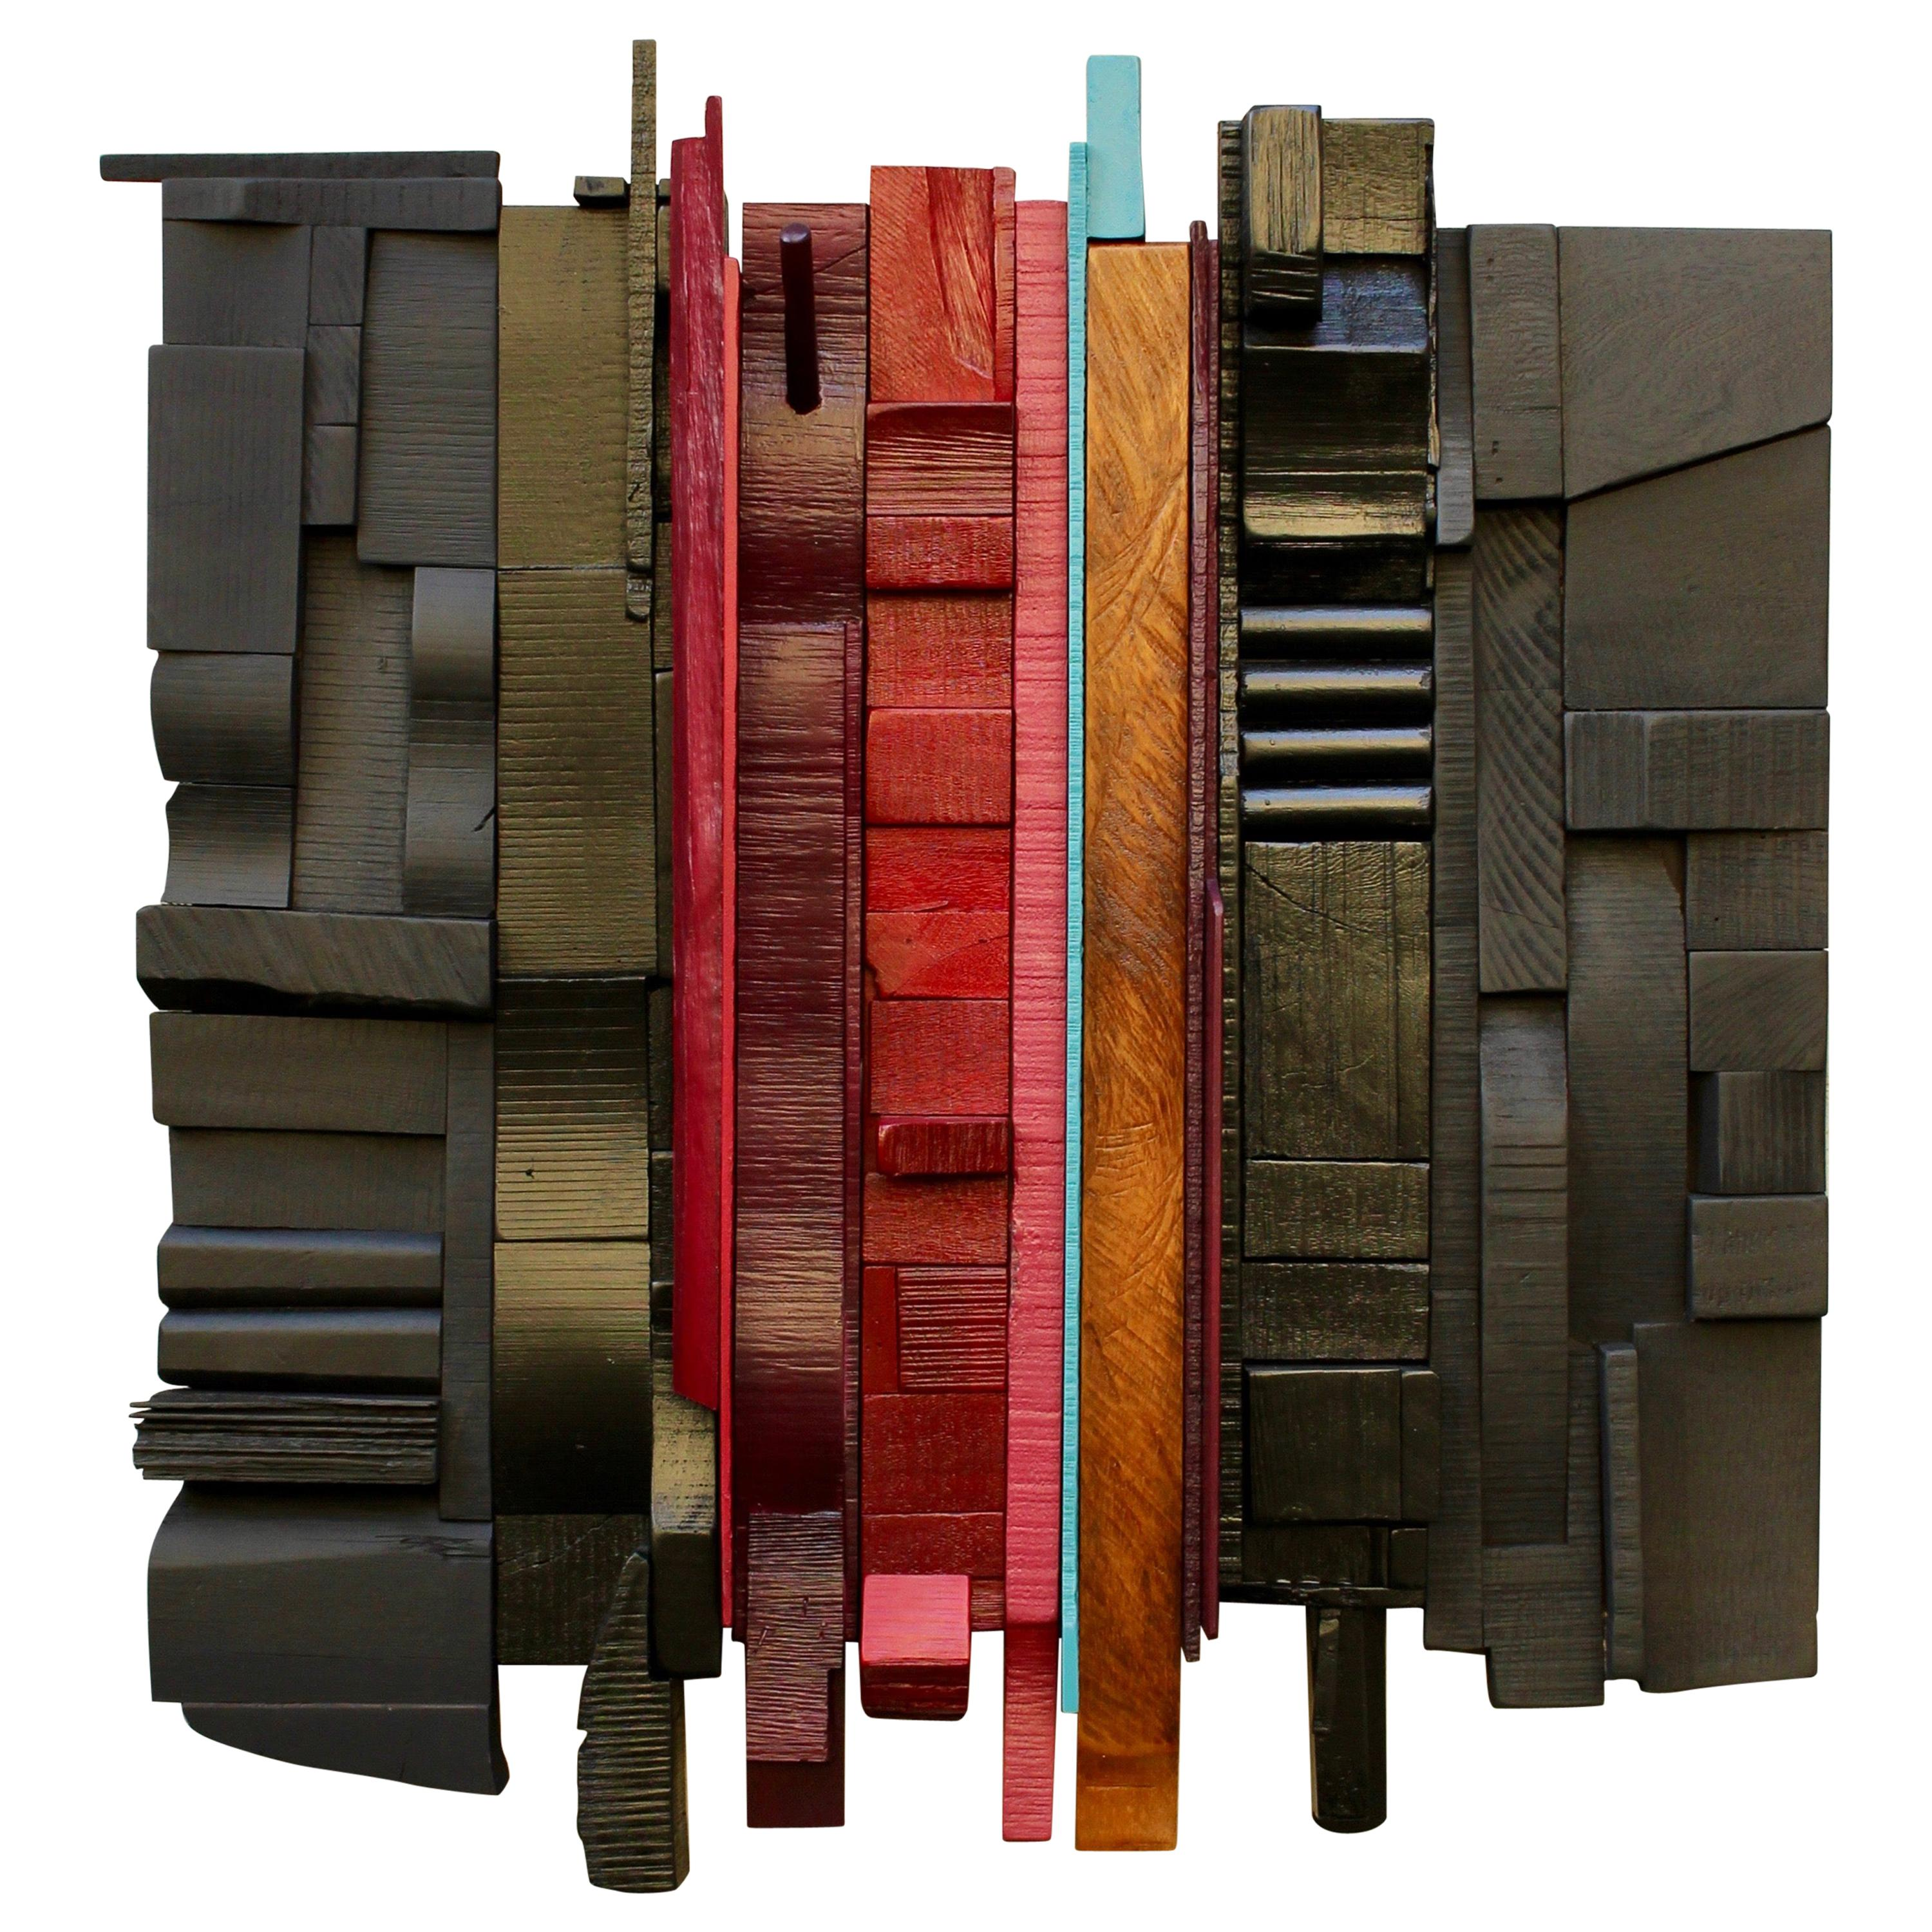 Passion Play, Peter Glassford, 2020 Wall Mounted Collage Sculpture 1/10